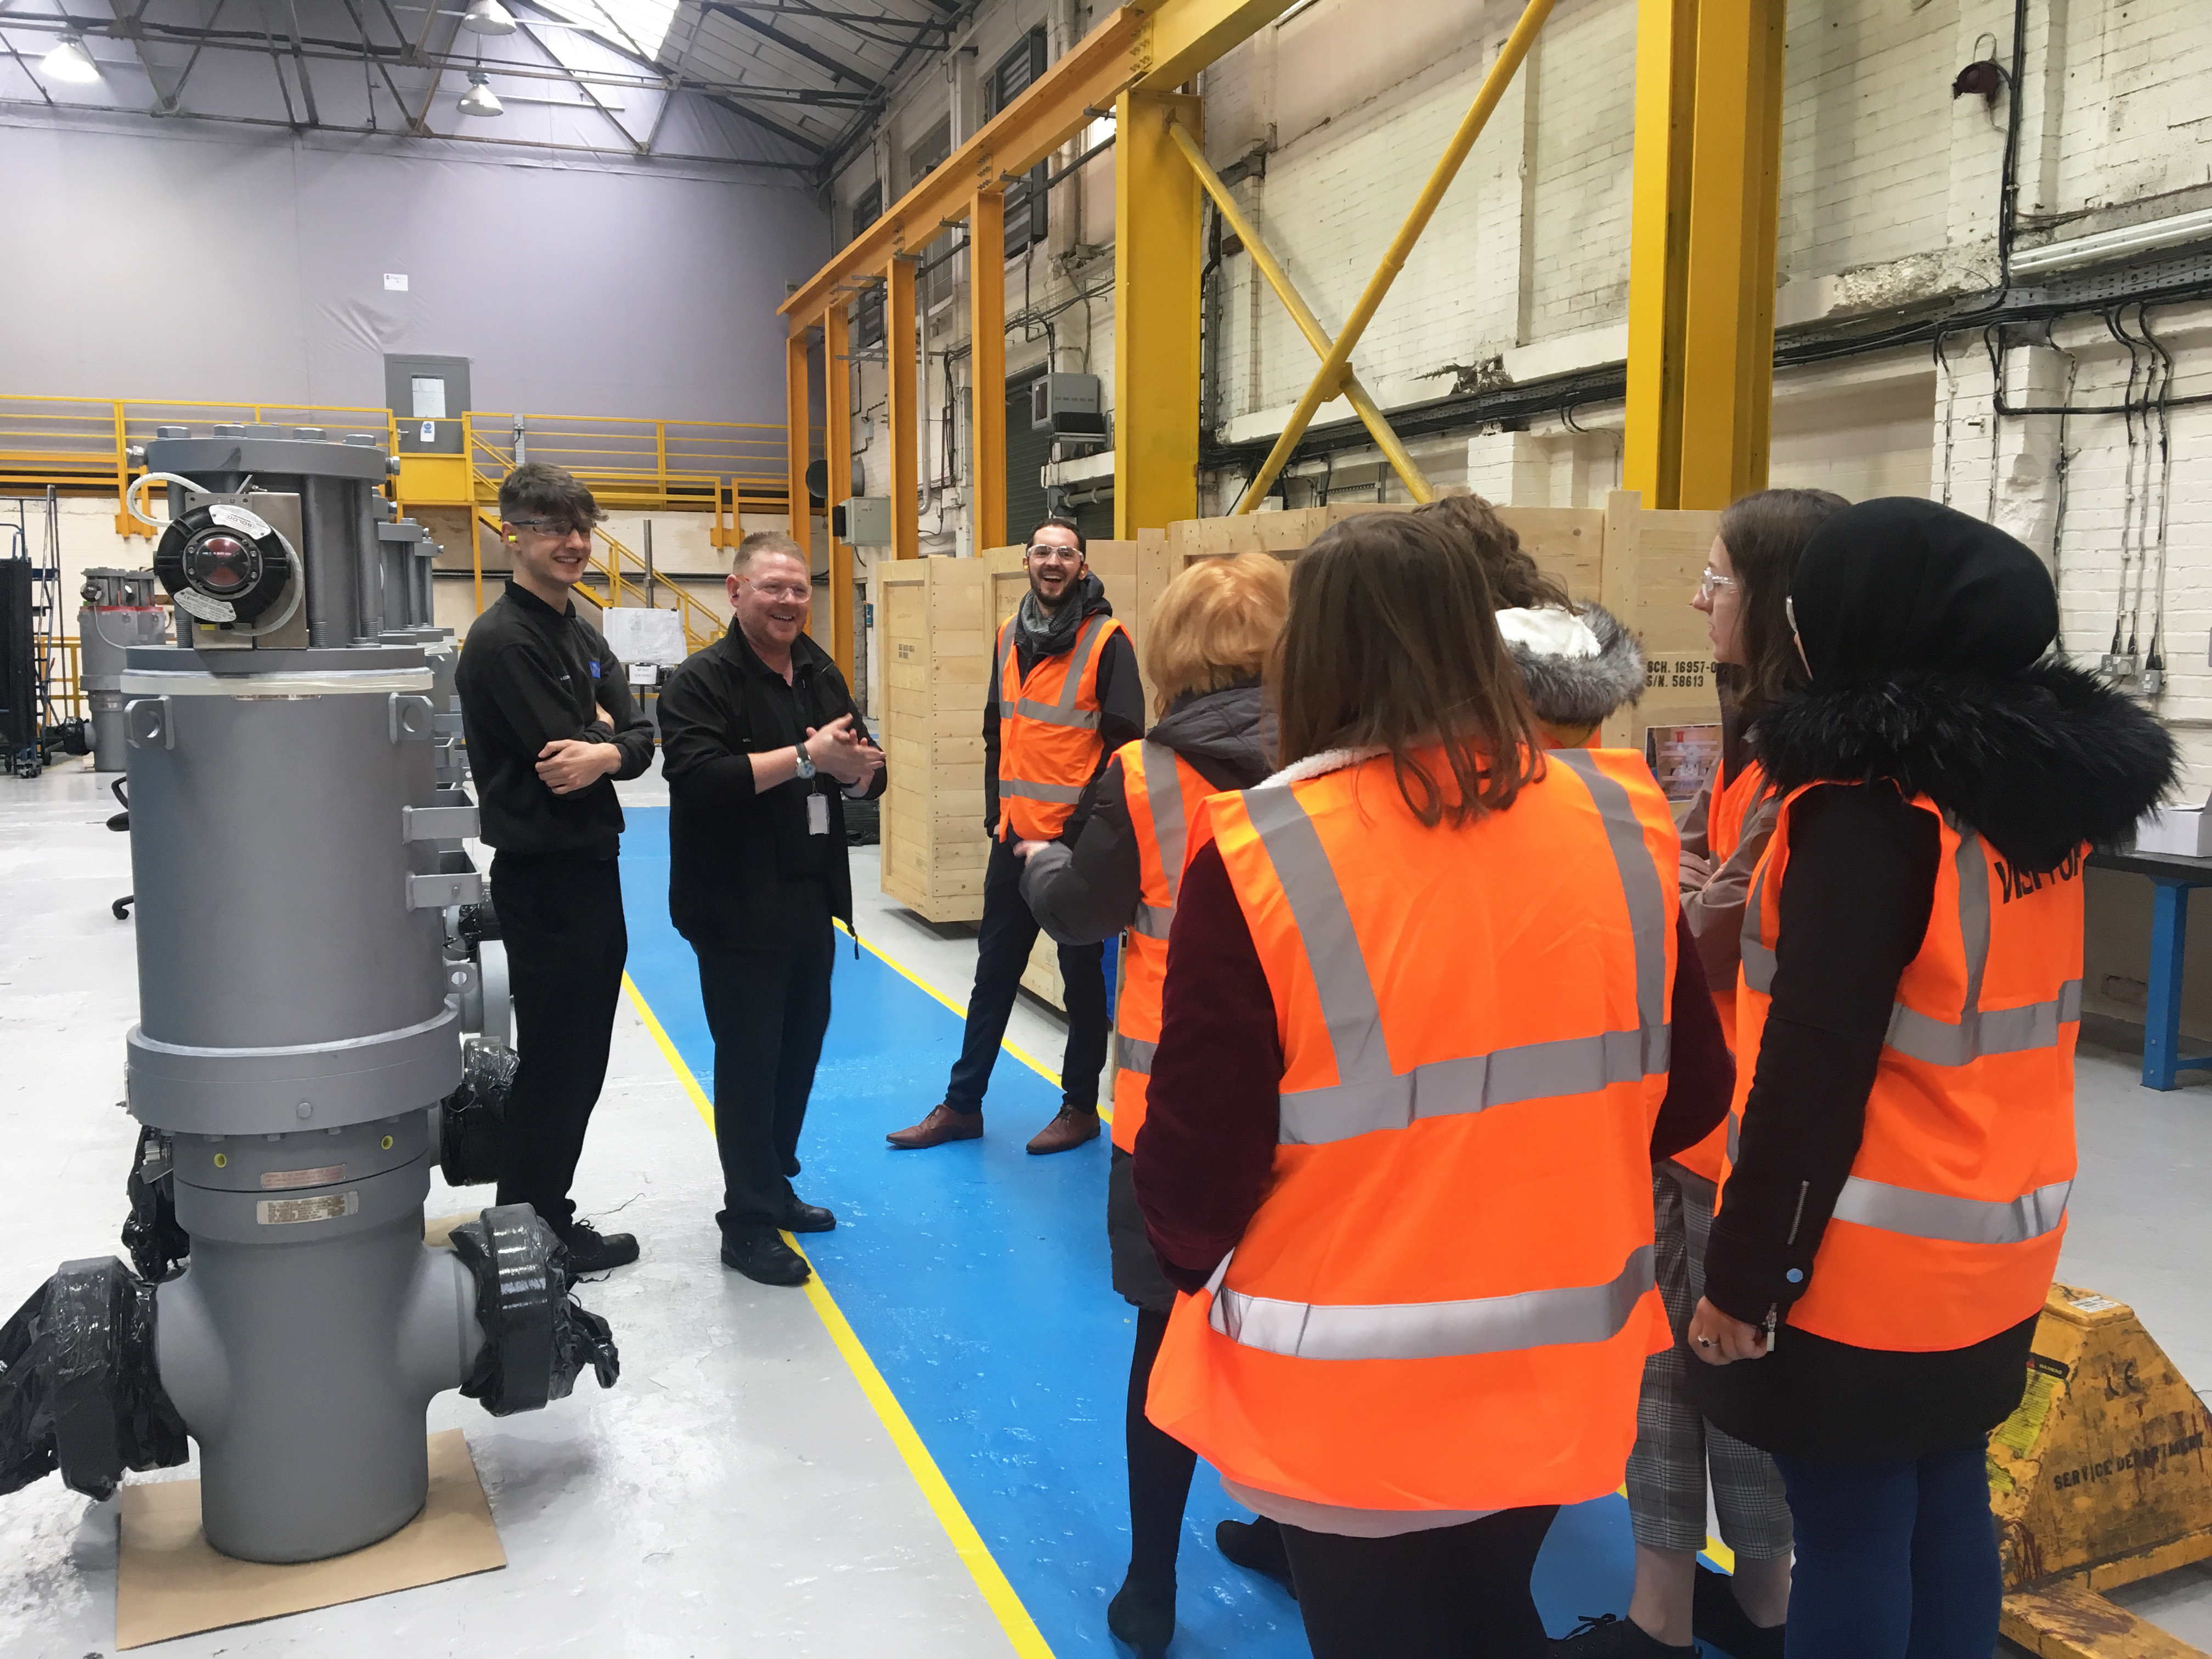 Students at BEL Valves Newcastle for Women in Engineering talk